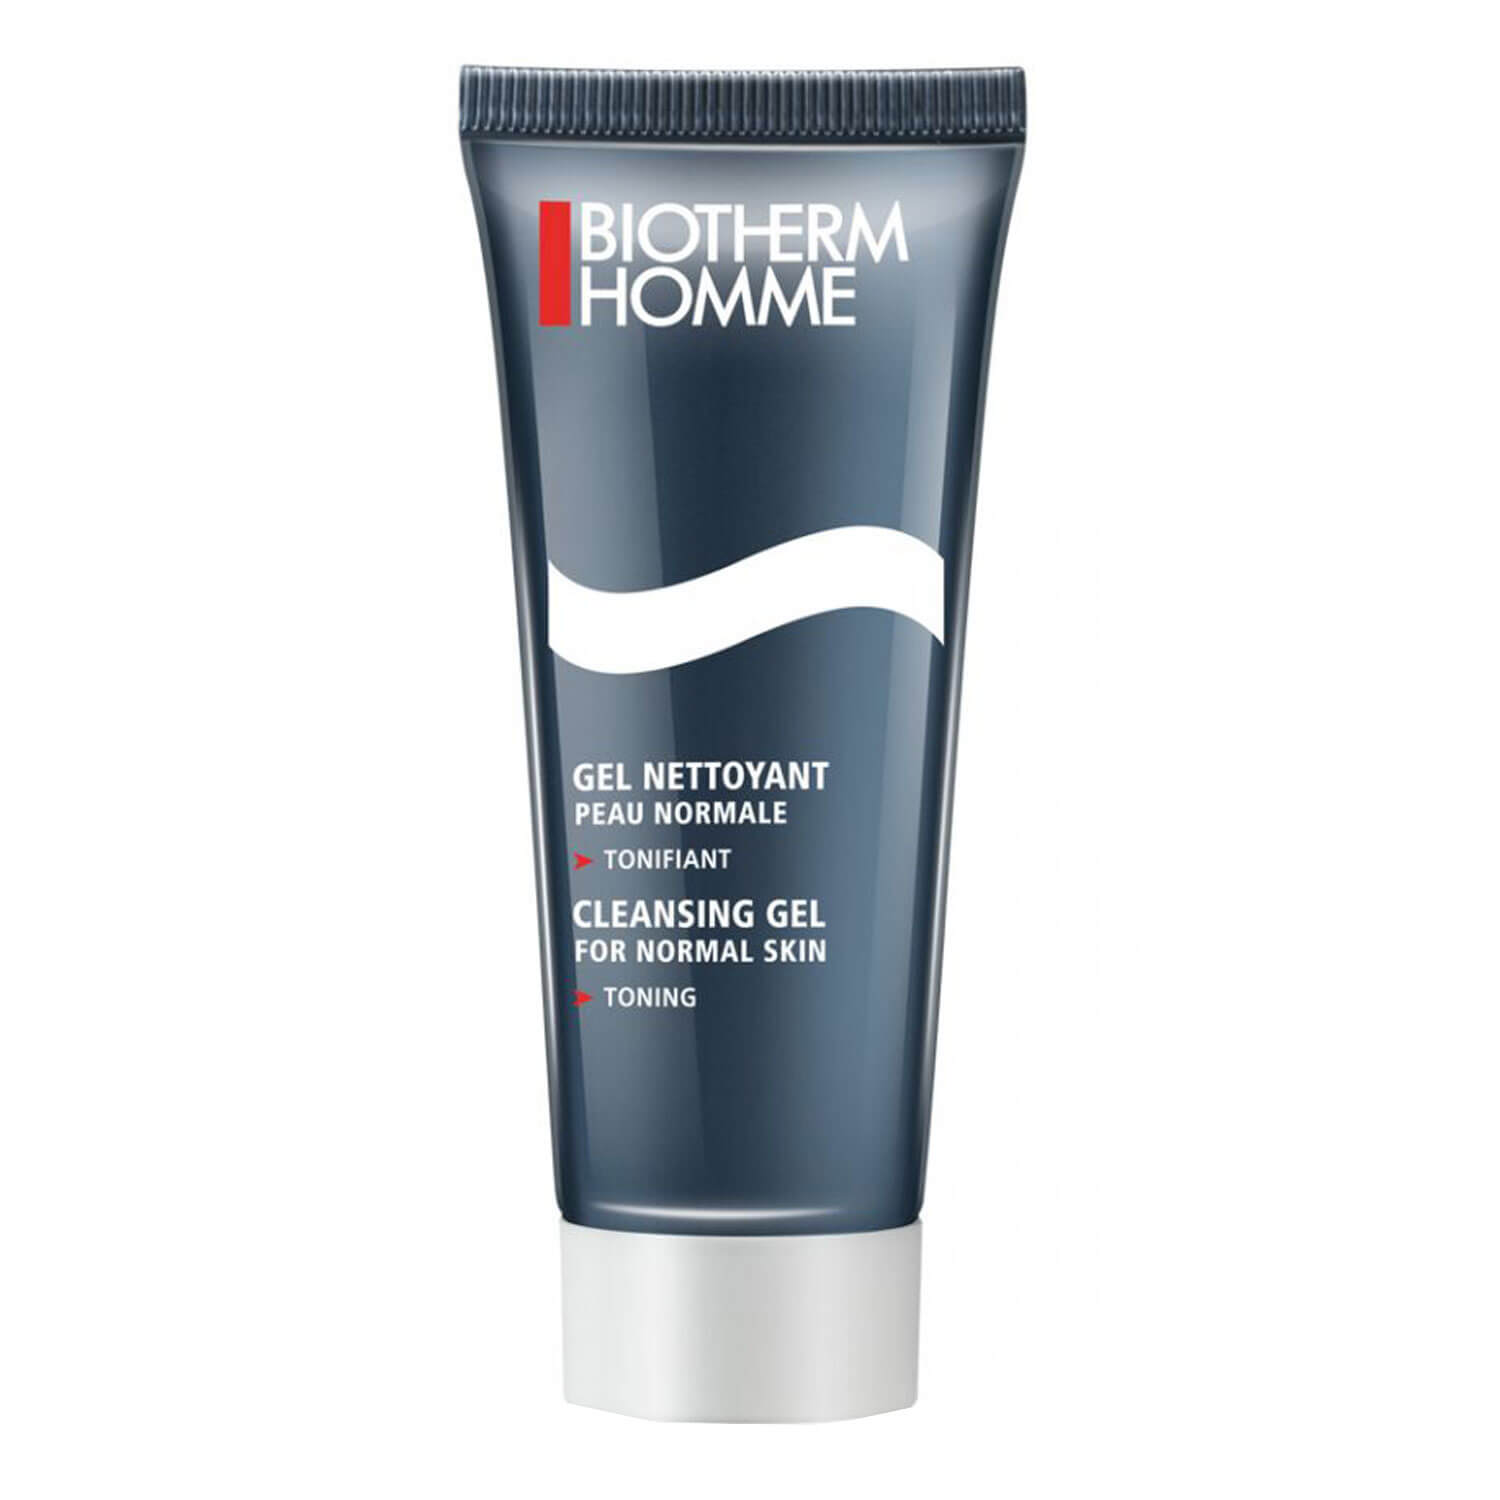 Biotherm Homme - Cleansing Gel